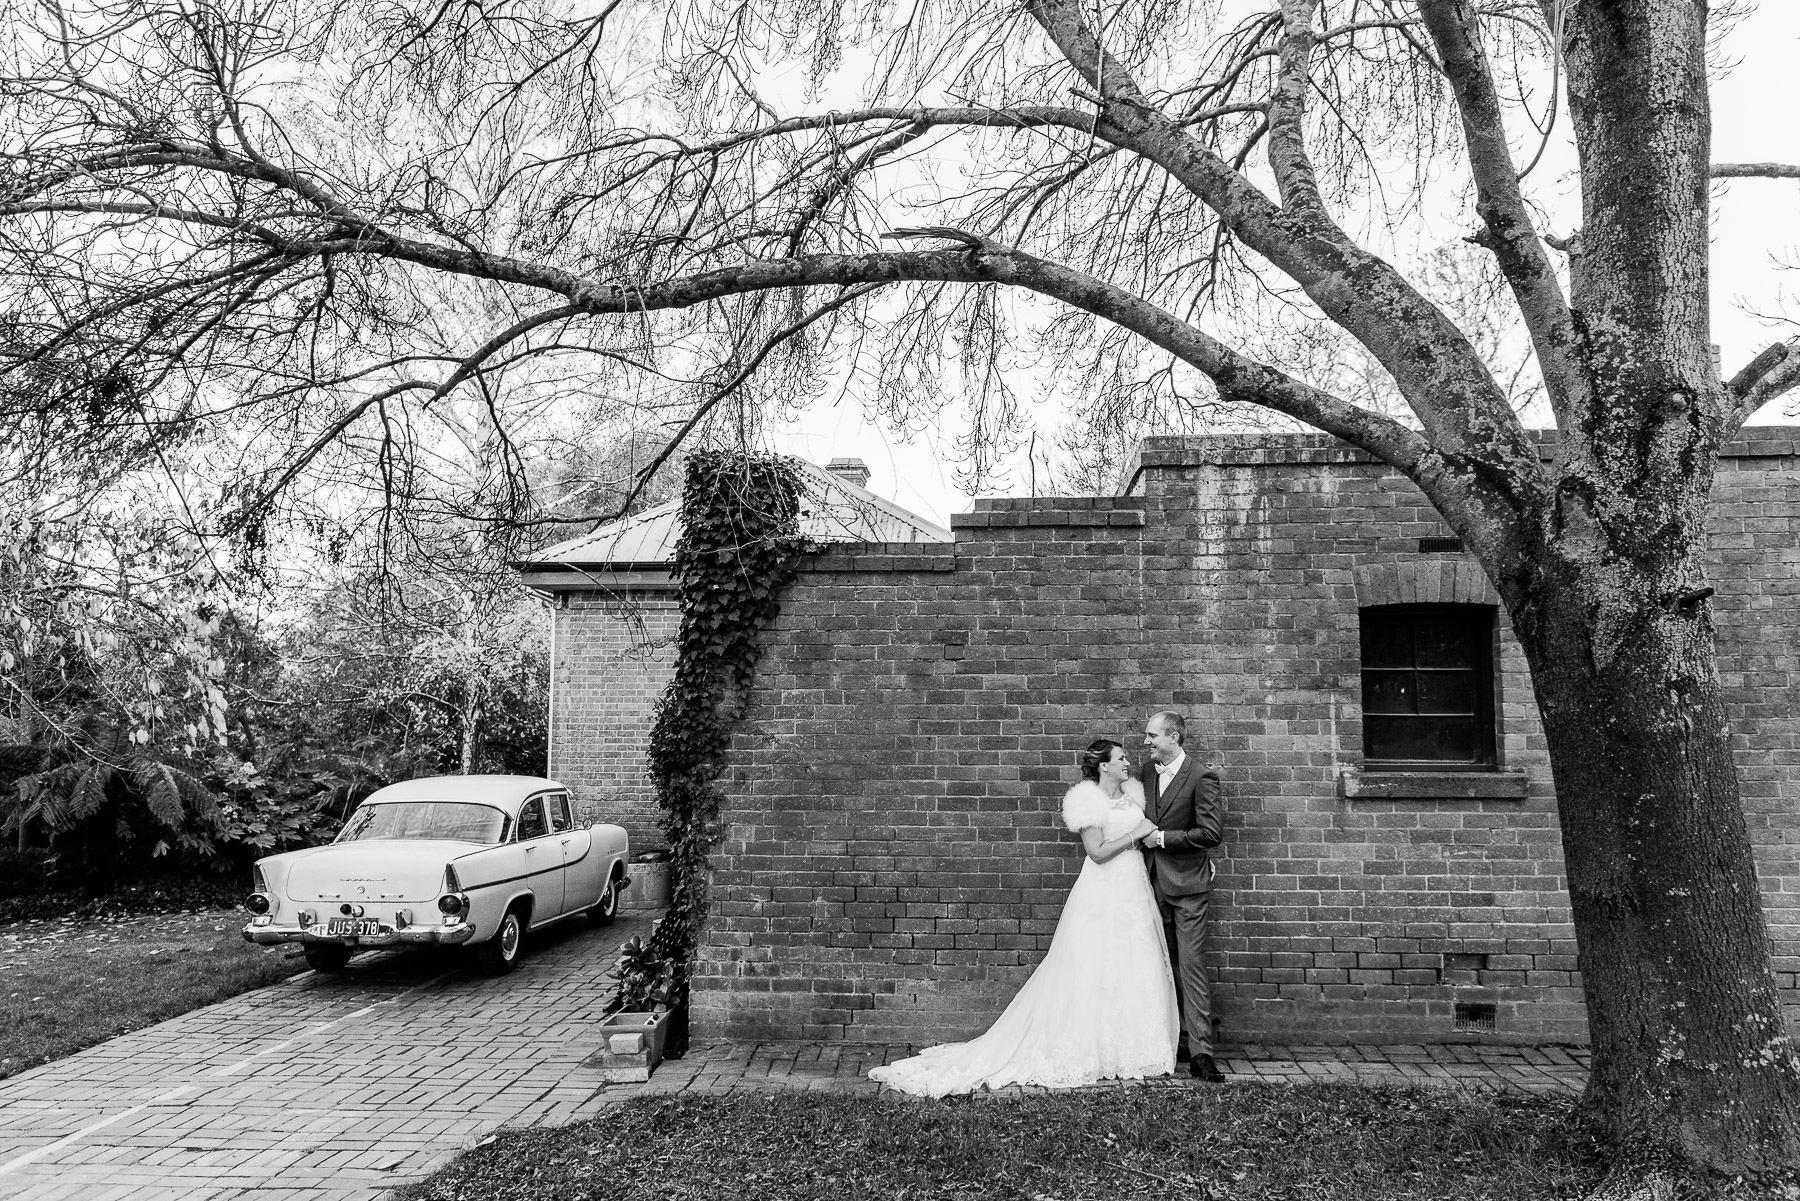 Justin_and_Jim_Best_Of_Wedding_Photography-76.jpg